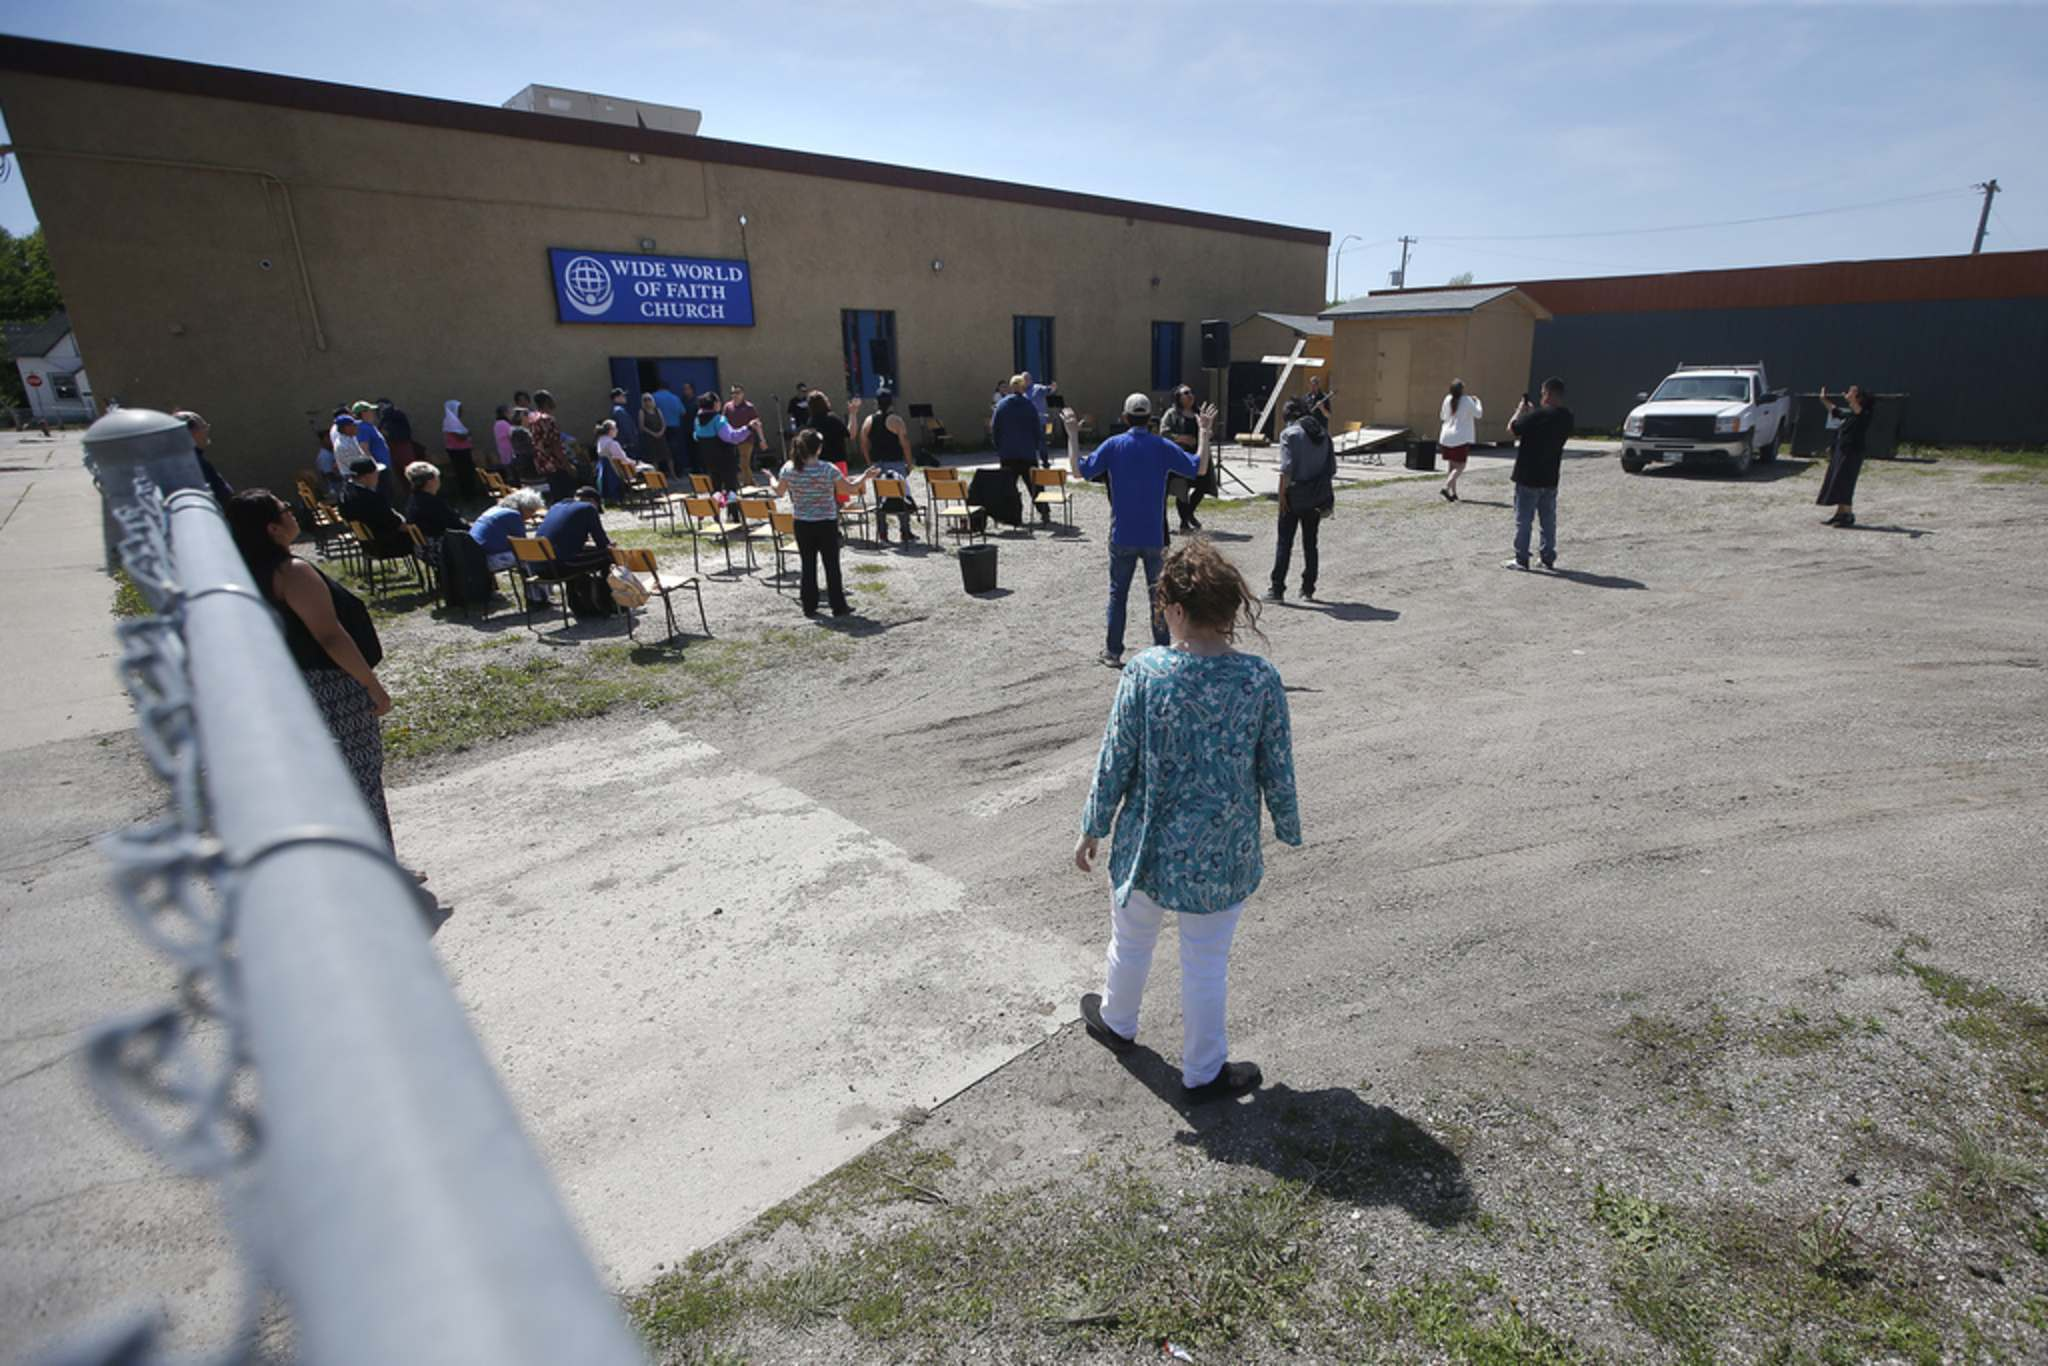 Church doesn't mean being inside. Teachings can also mean people meet regularly in houses or back yards, much like they did in the parking lot at the Wide World of Faith Church on May 31. (John Woods / Winnipeg Free Press files)</p>